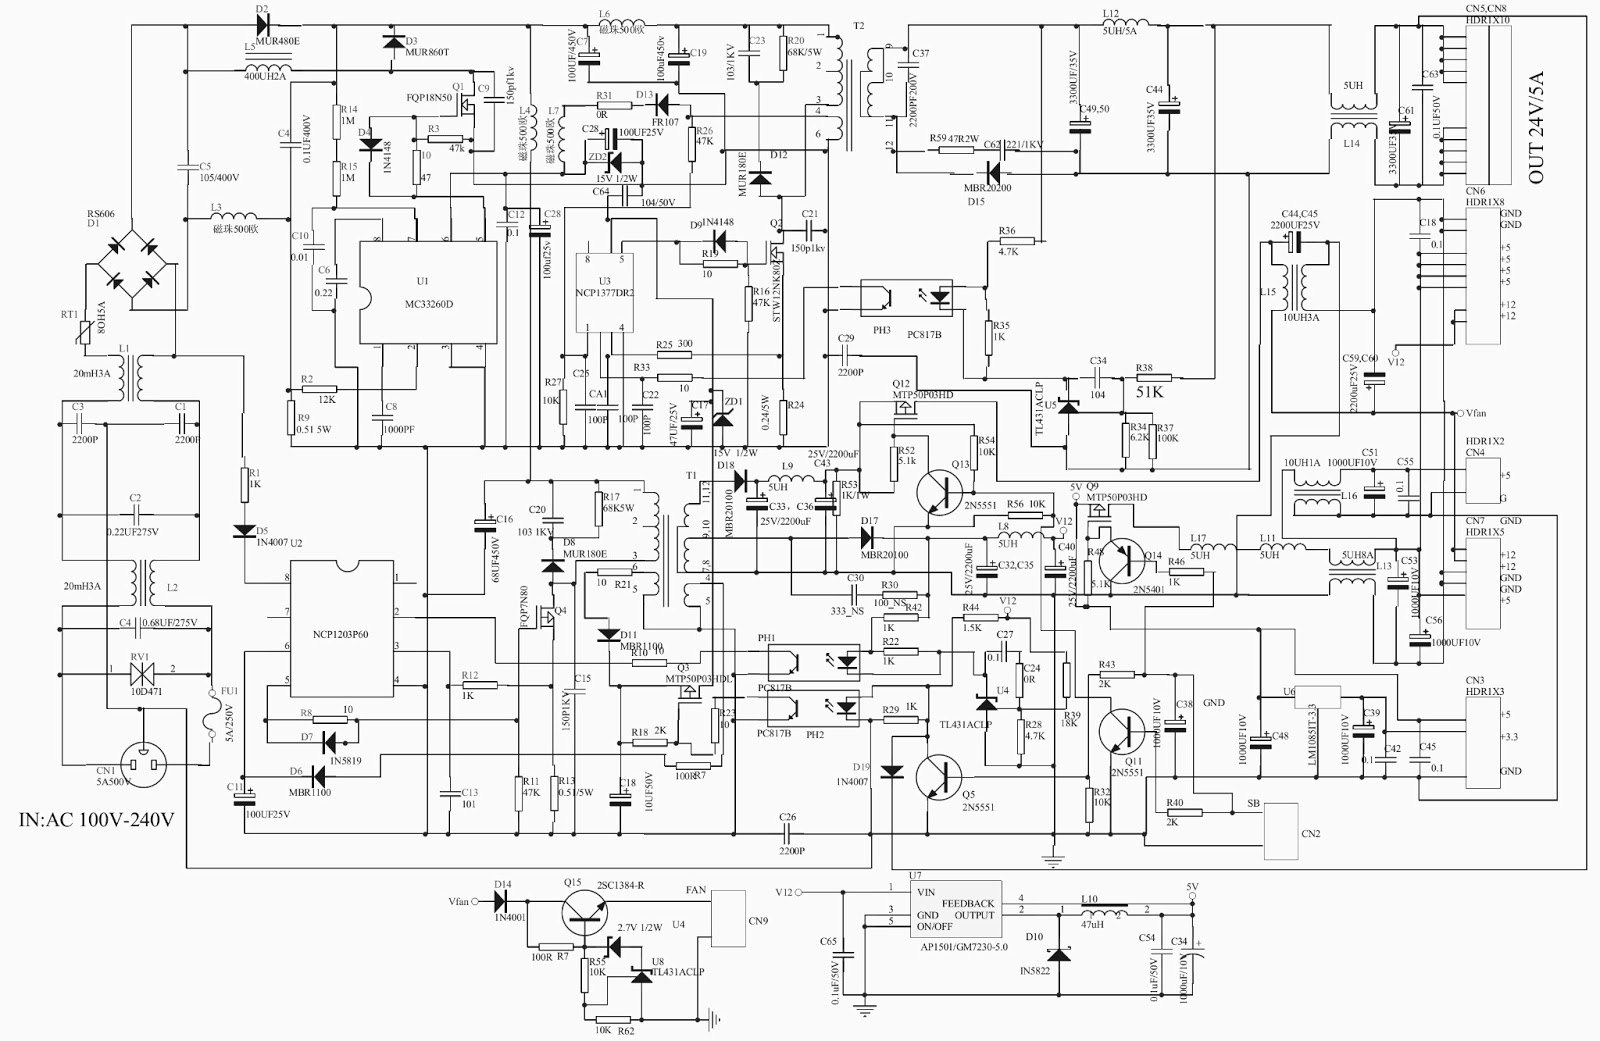 Diagram Tcl Tv Power Supply Diagram Full Version Hd Quality Supply Diagram Diagramdreman Corocrozdalastria It